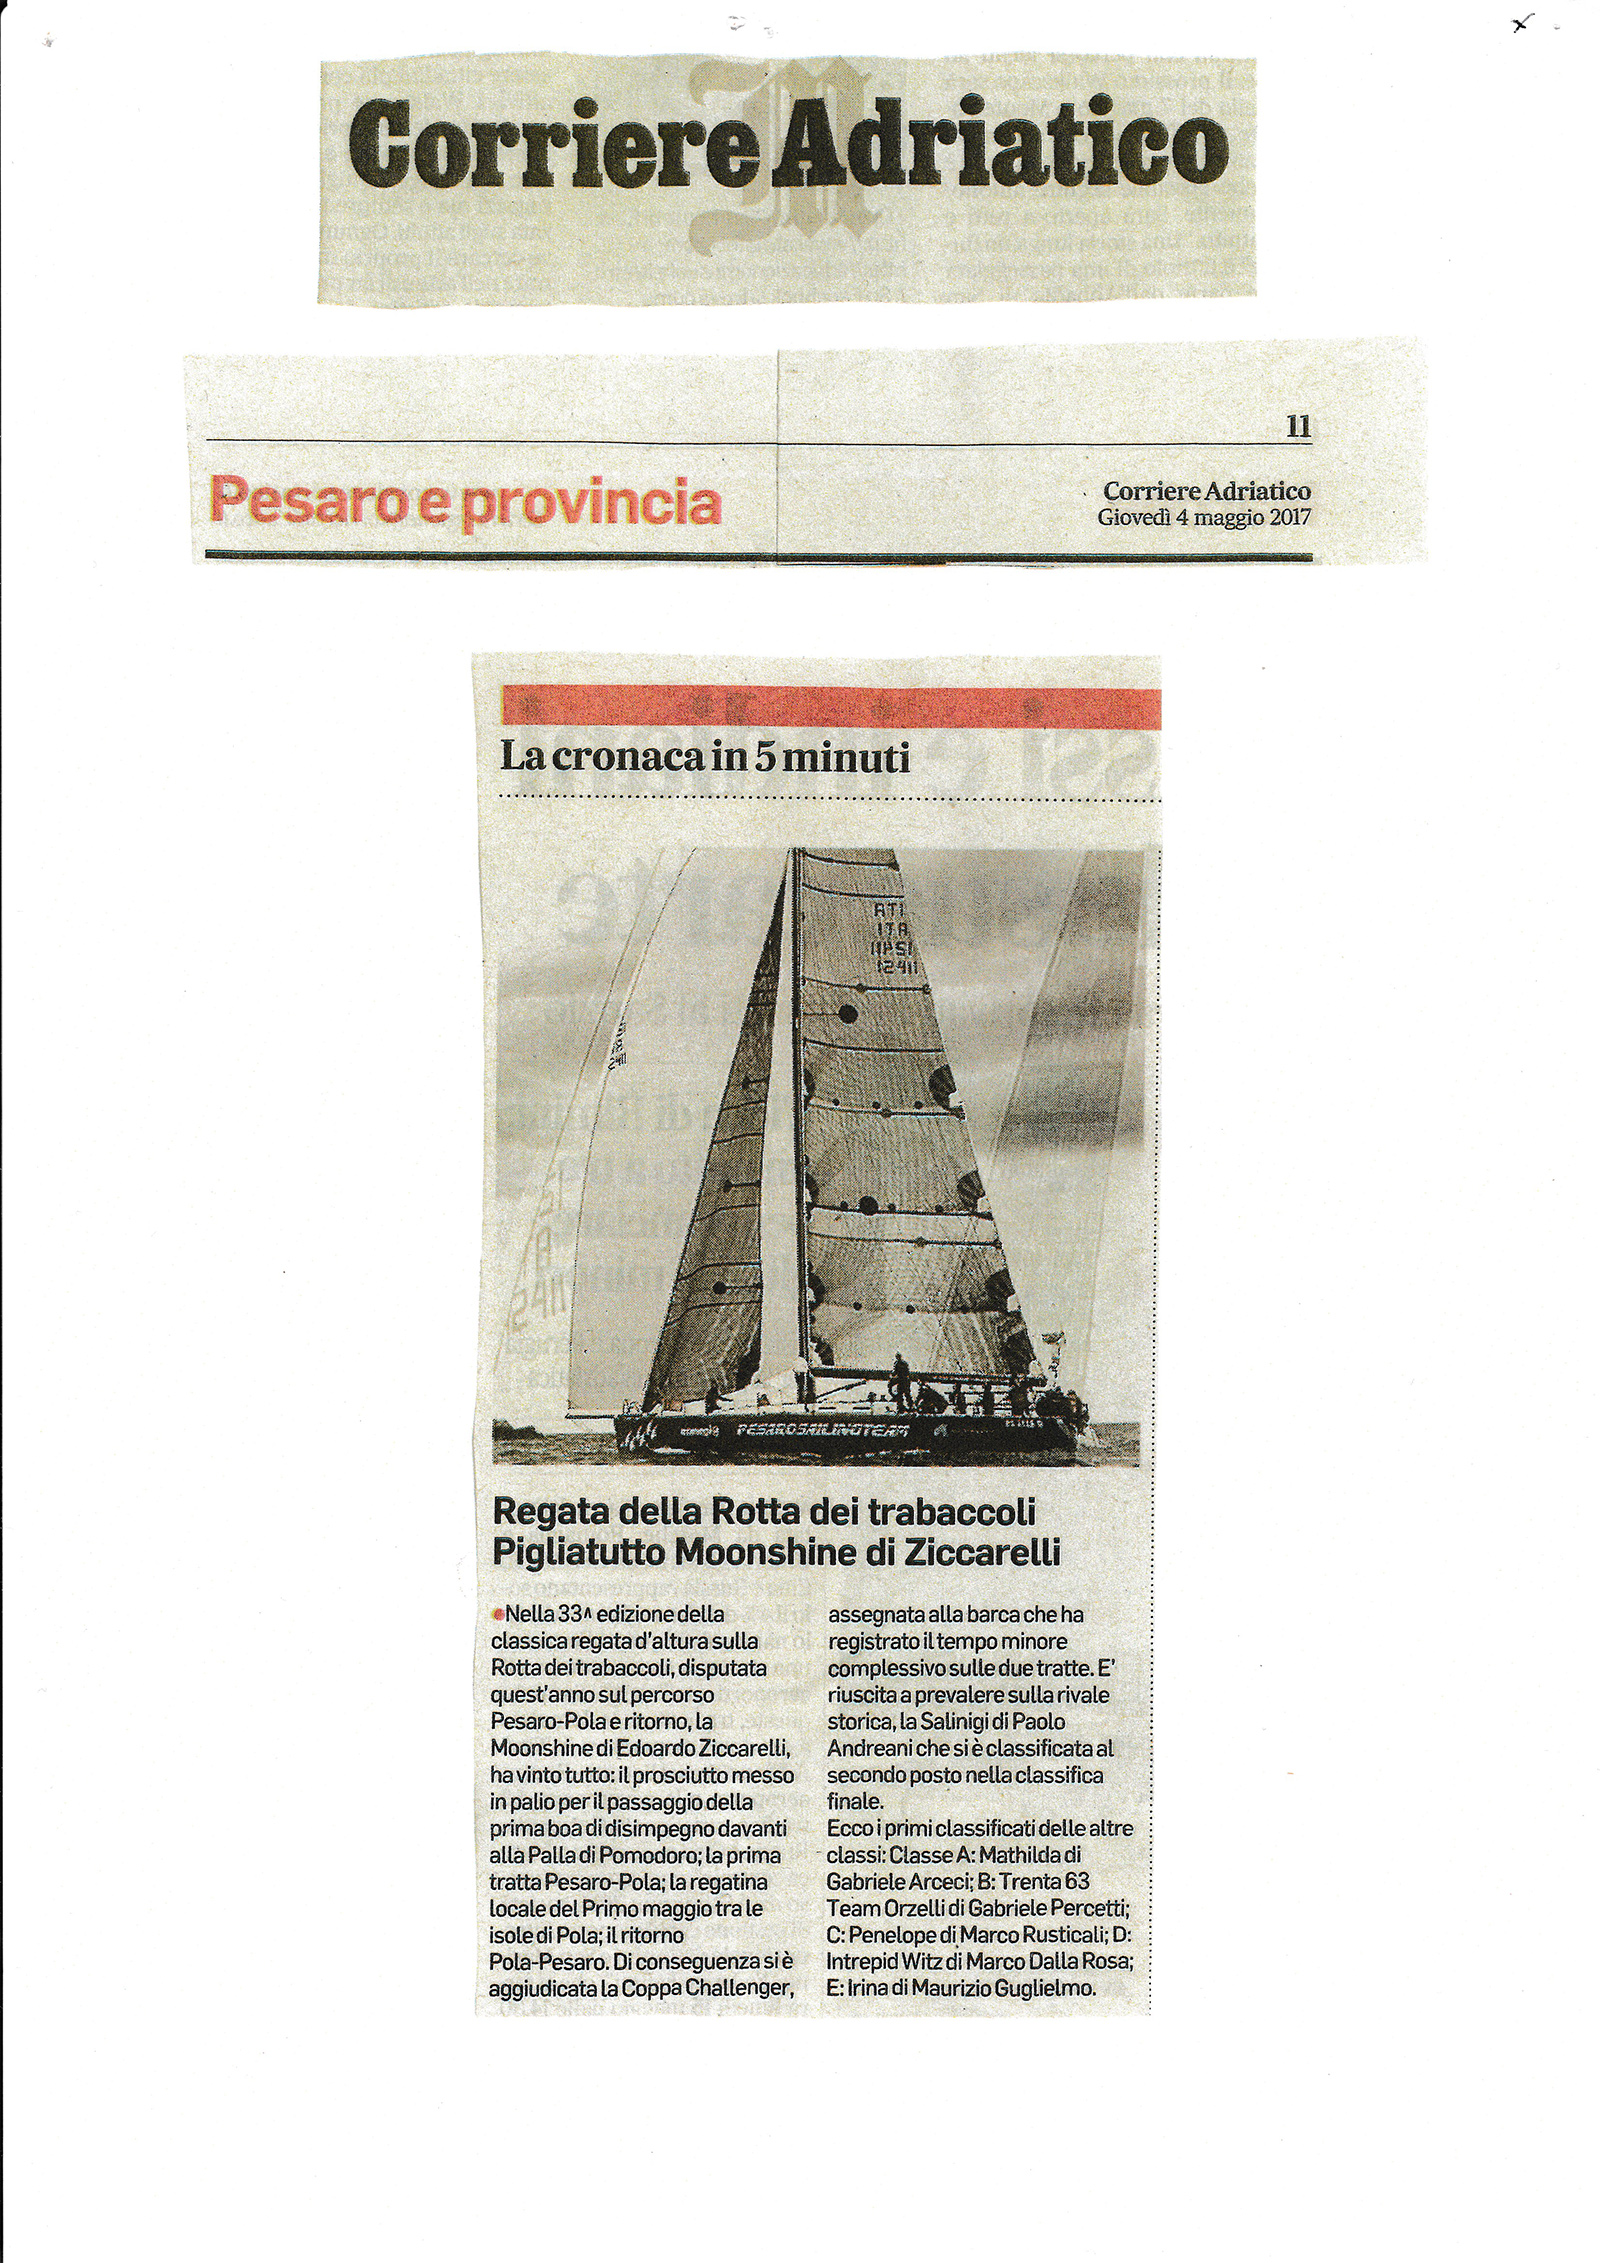 giornale8 20170530 0001